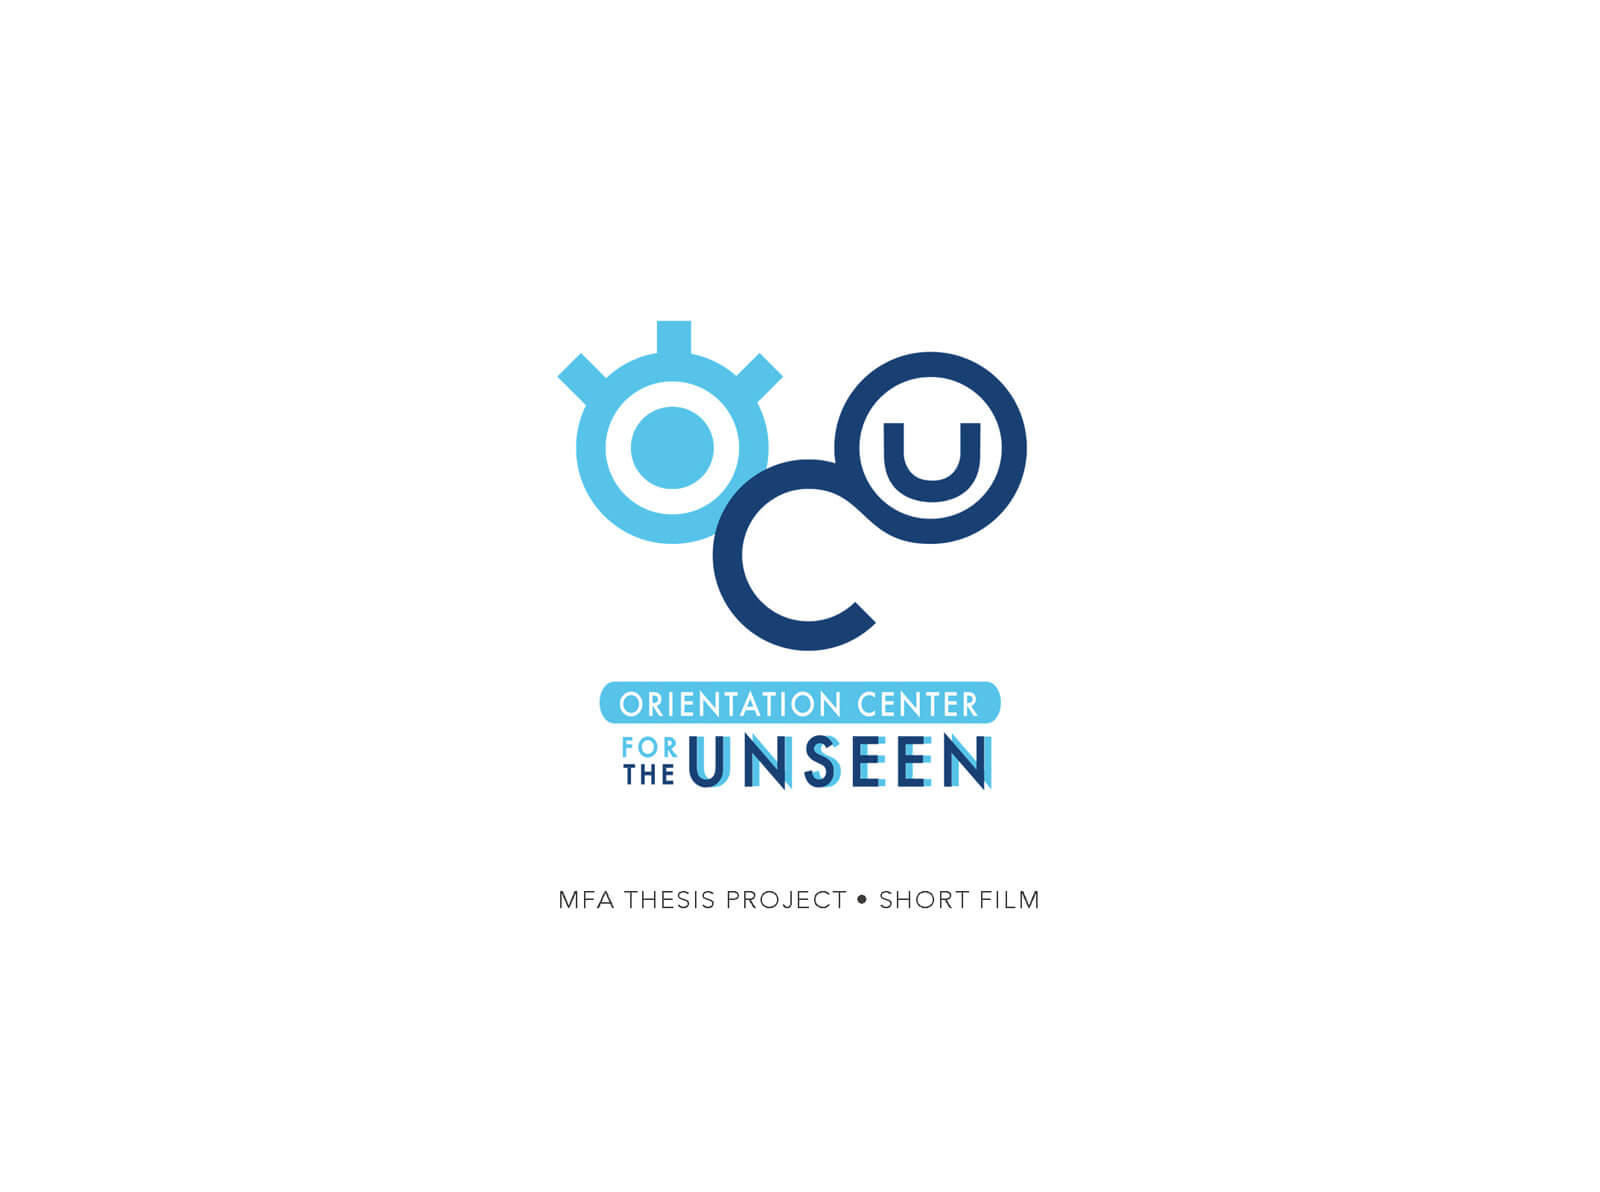 Title slide for the short film Orientation Center for the Unseen, depicting a stylized, blue and light blue logo